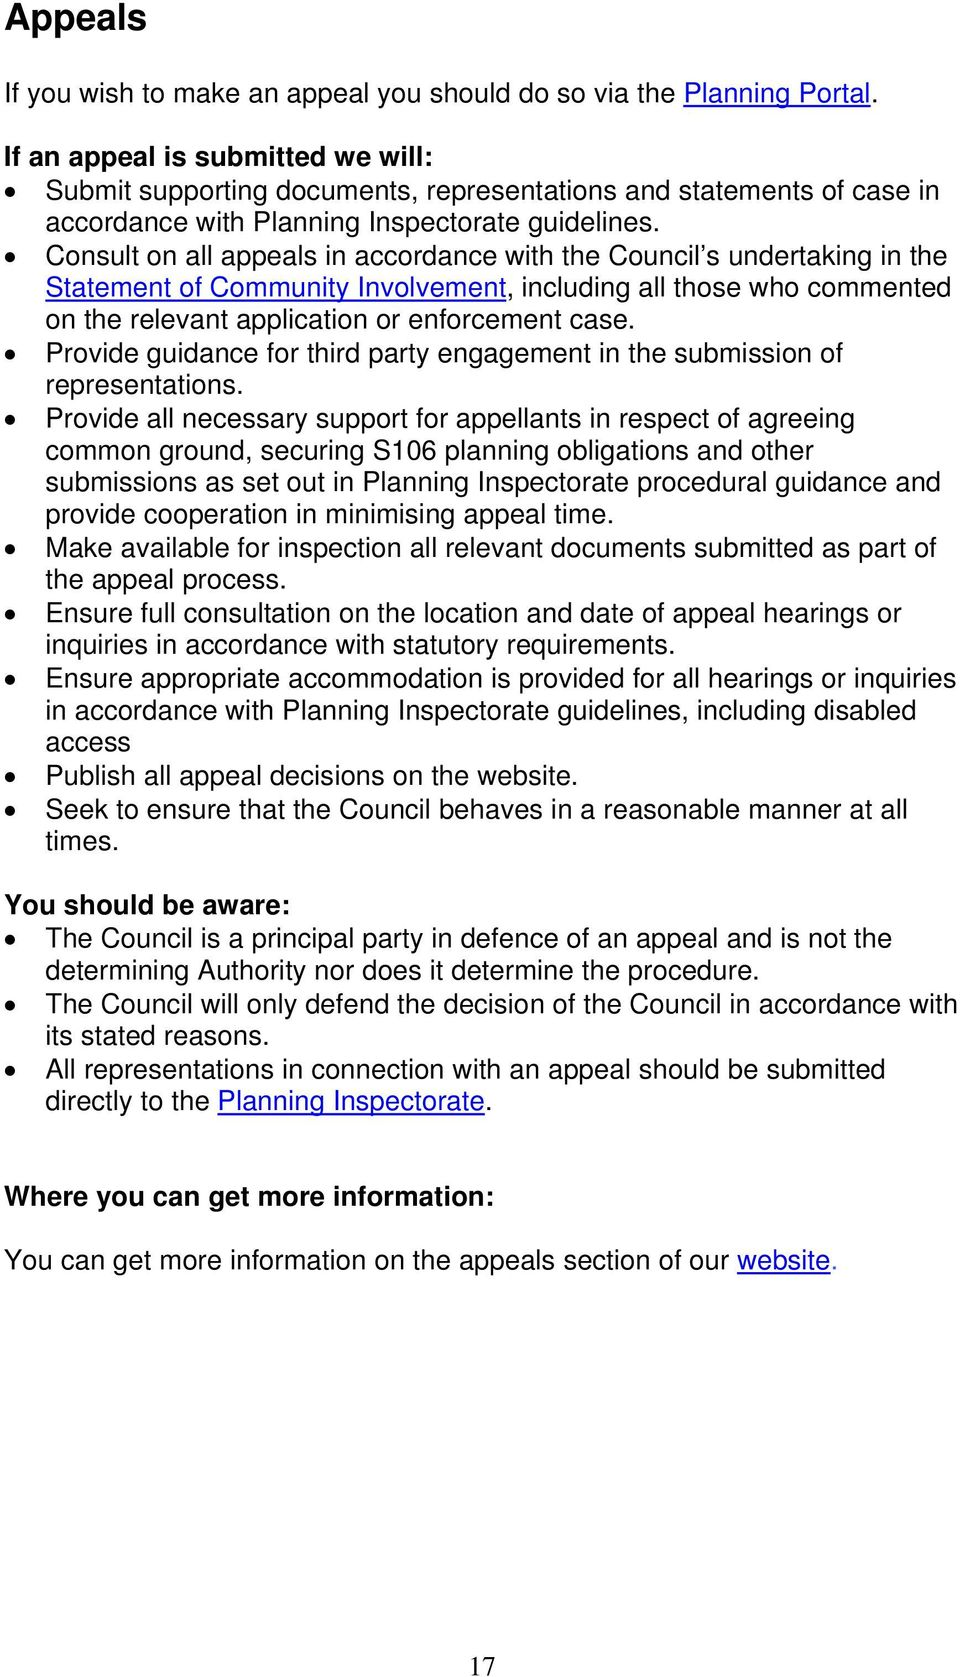 Consult on all appeals in accordance with the Council s undertaking in the Statement of Community Involvement, including all those who commented on the relevant application or enforcement case.